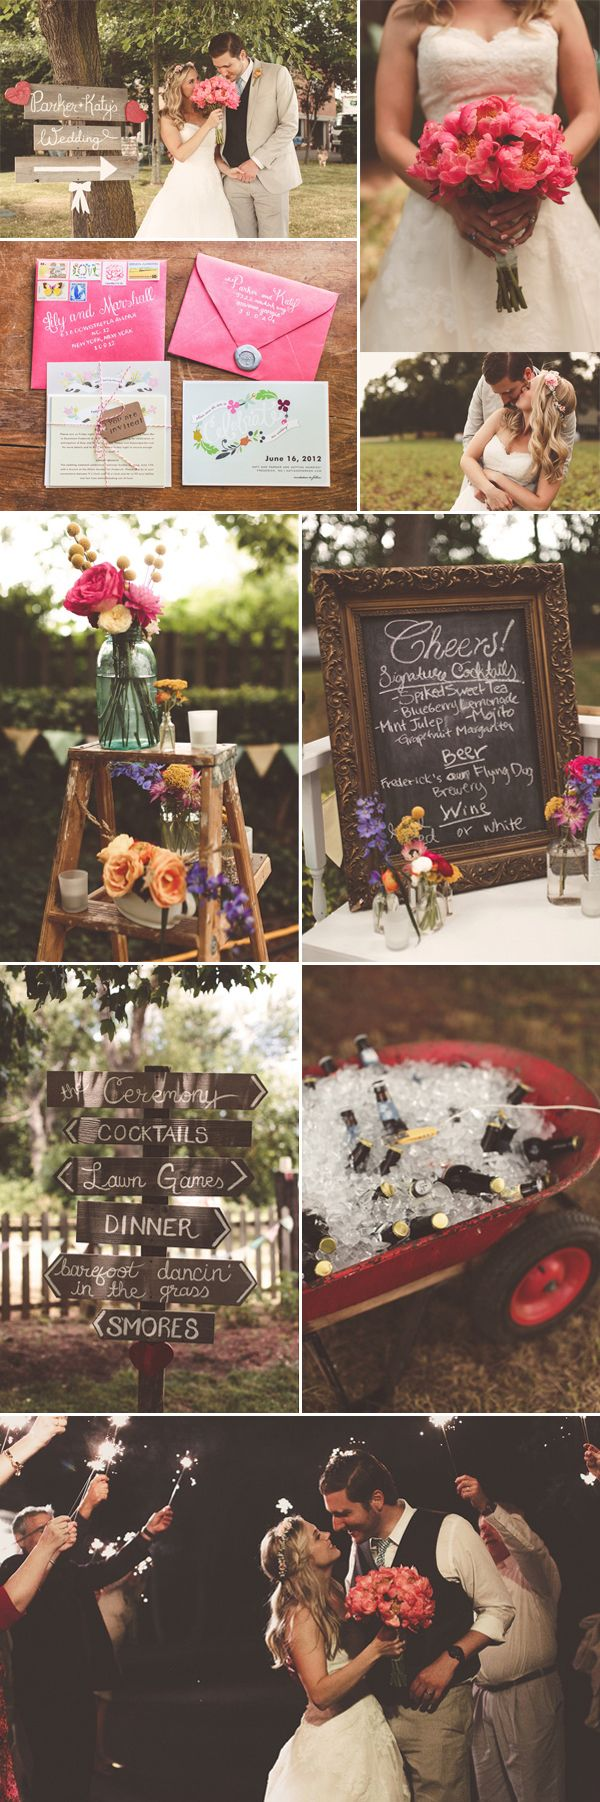 132 best weddings images on pinterest love marriage and wedding